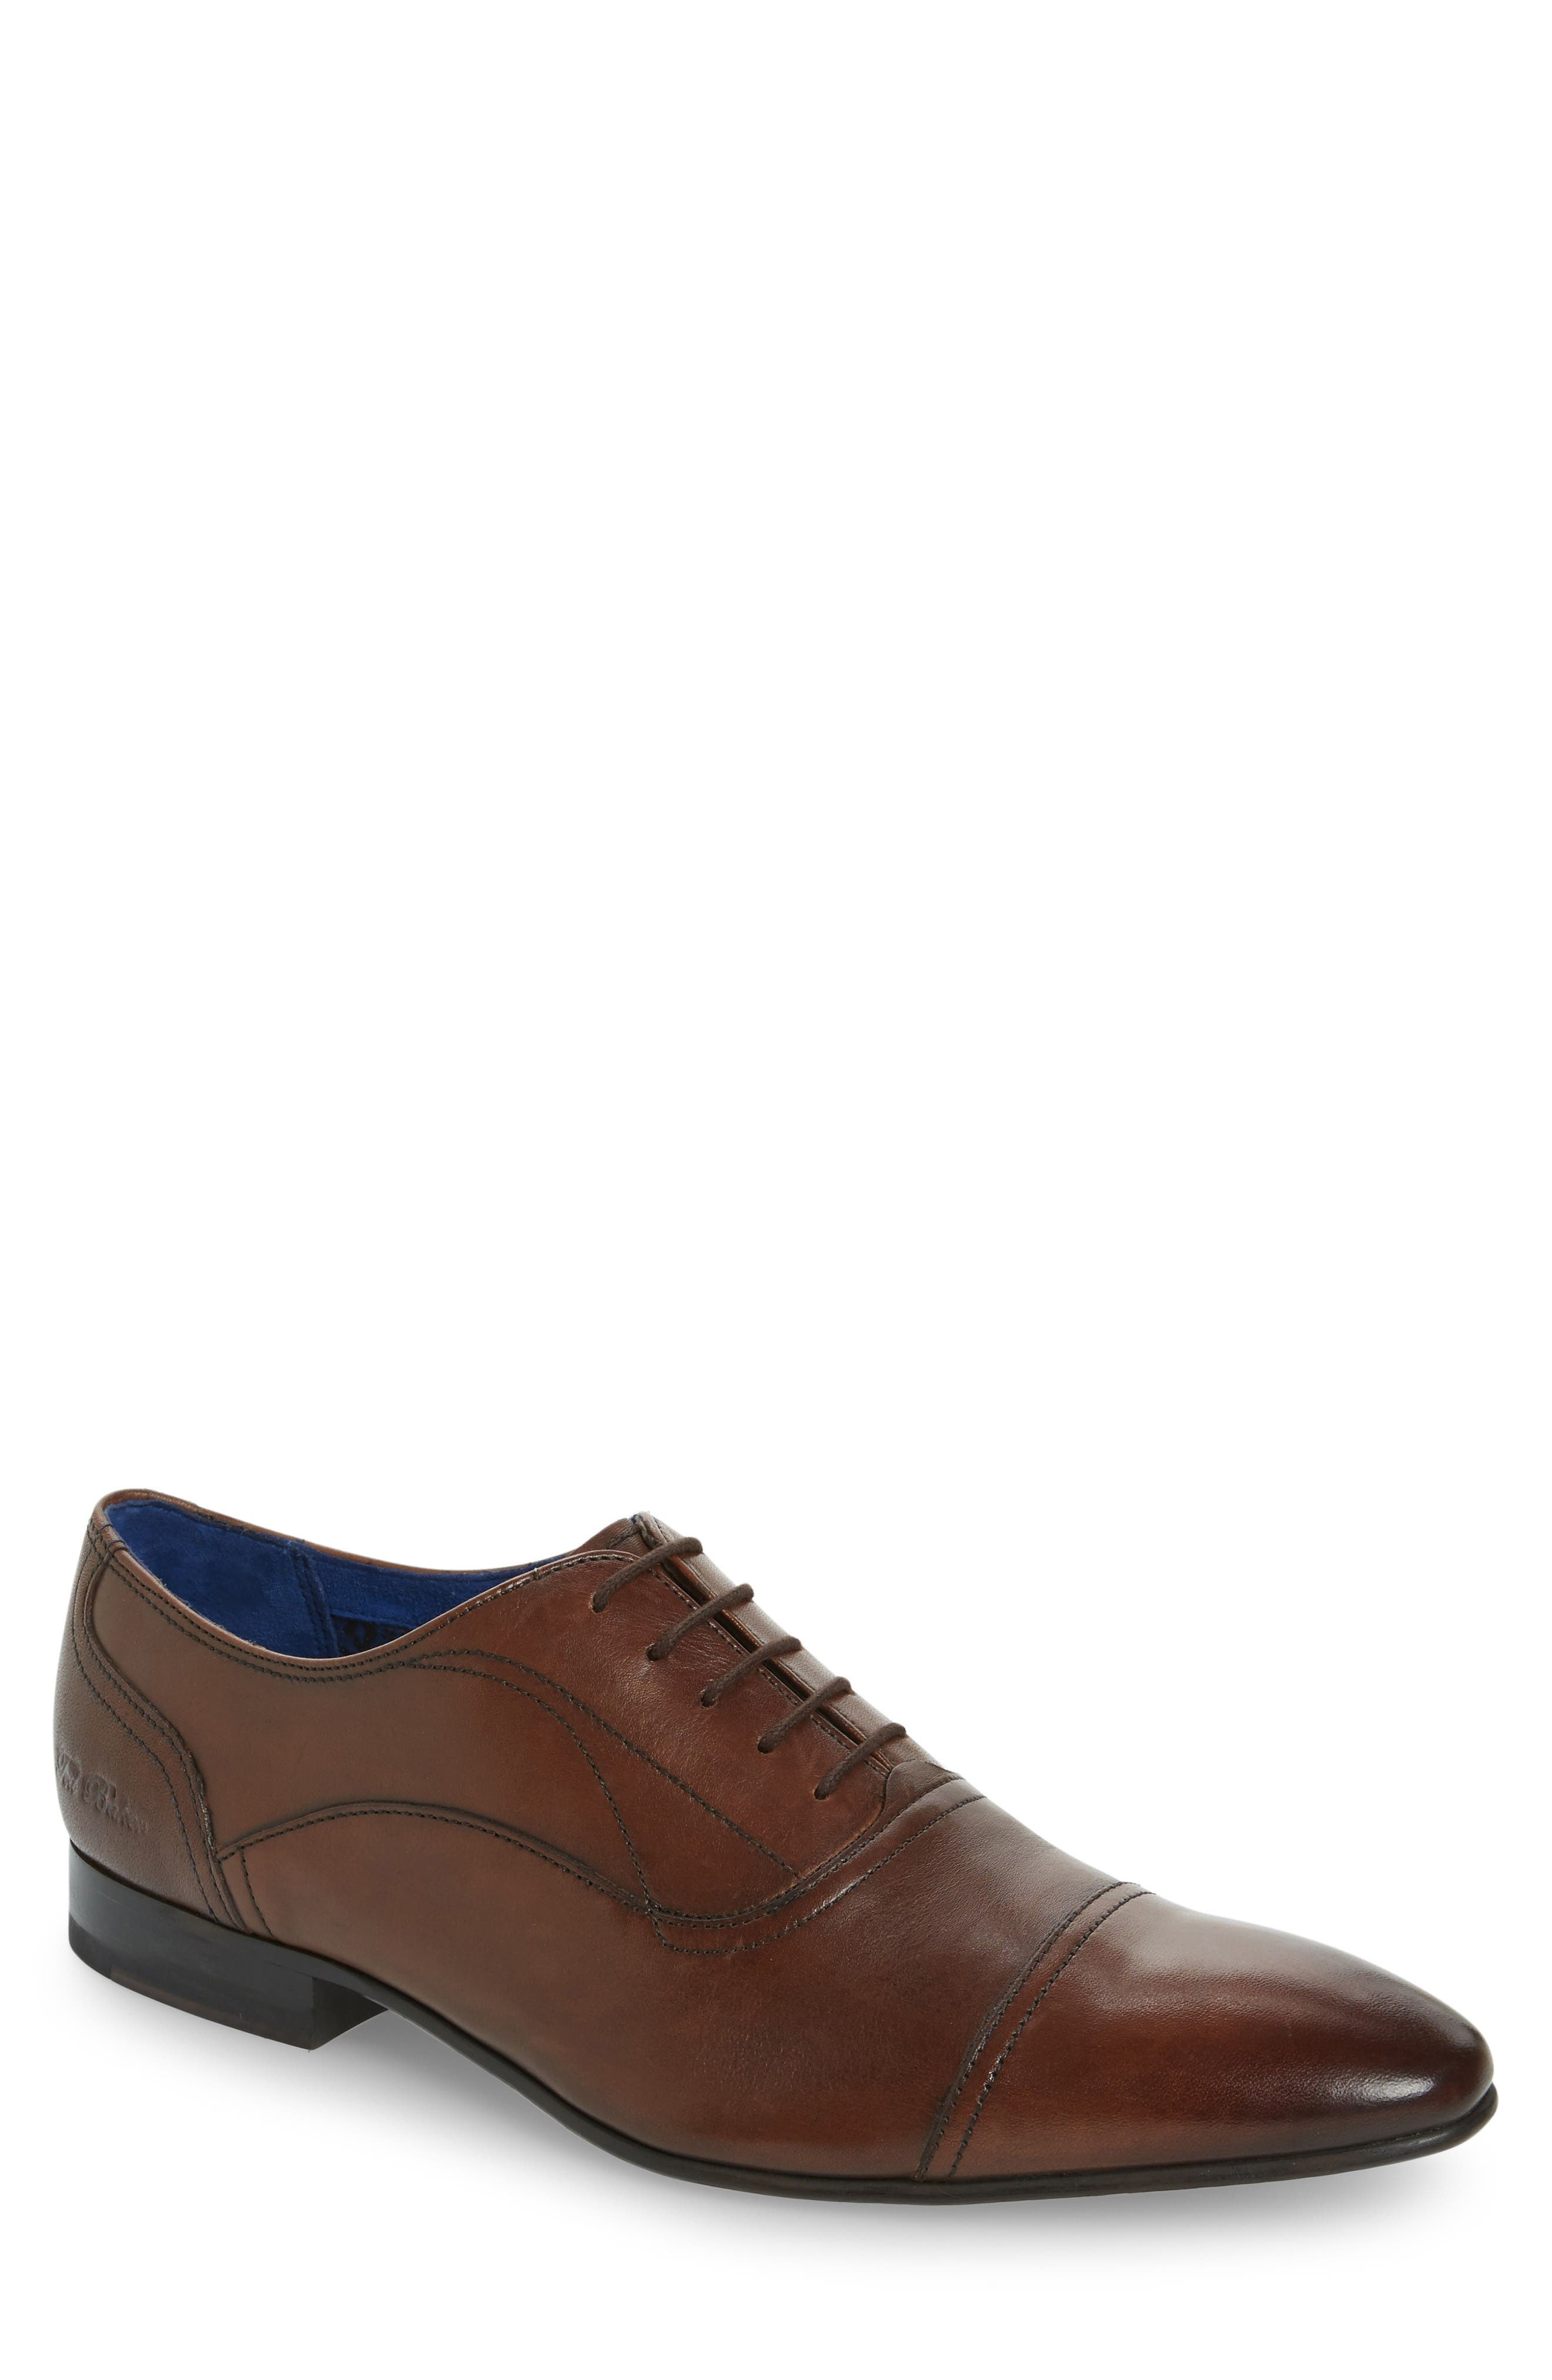 'Umbber' Cap Toe Oxford,                         Main,                         color, Brown Leather